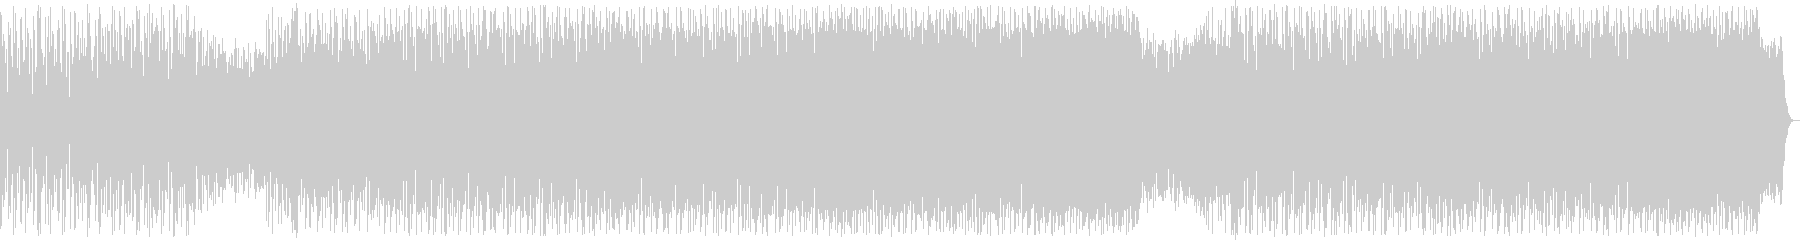 A song in which a lively scream produces a surge's unreproduced waveform